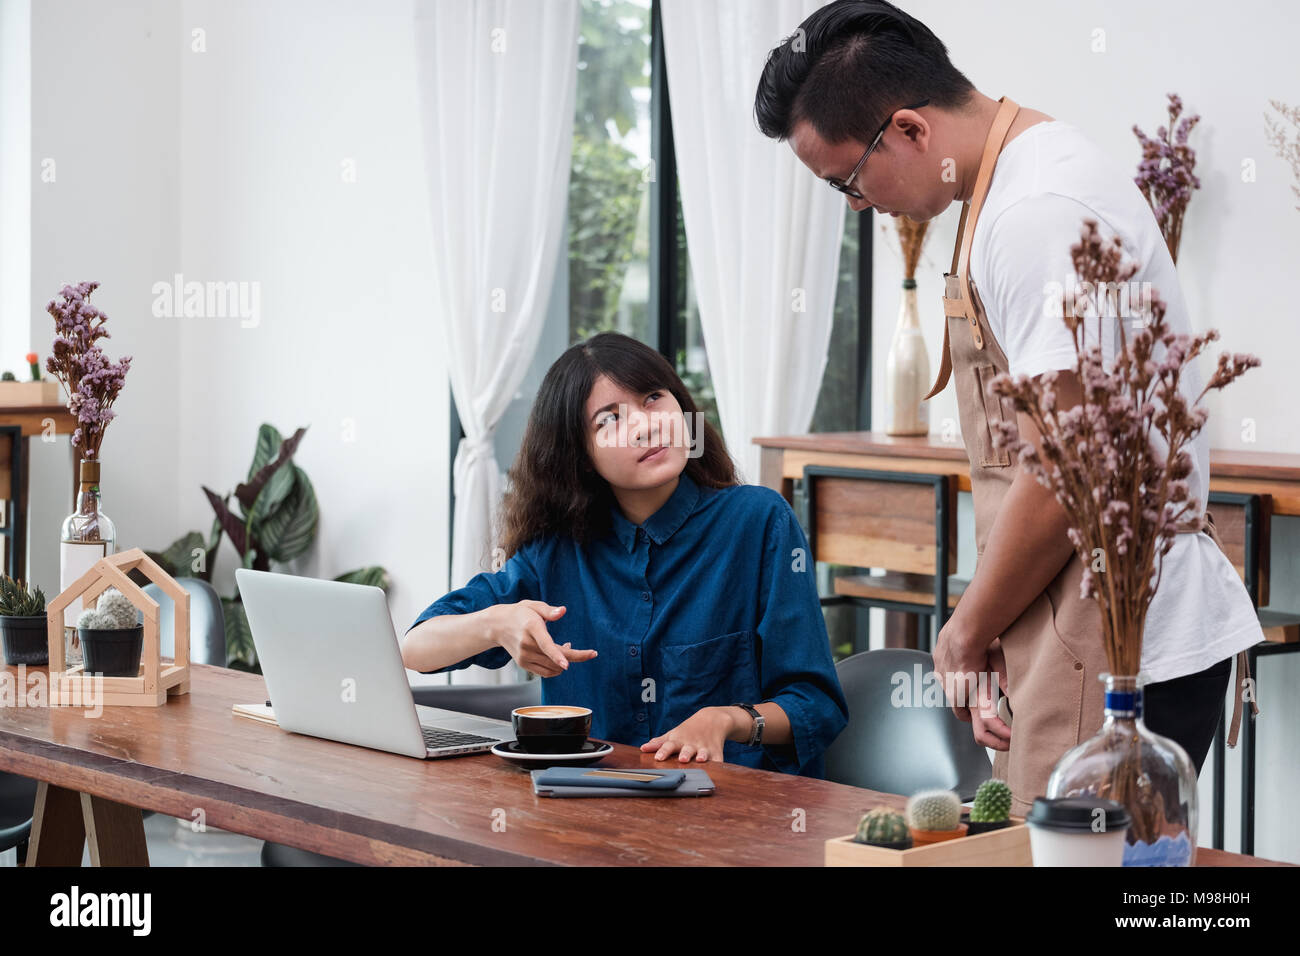 asian woman customer complaining to waiter about food in cafe restaurant,unhappy emotion service in coffee shop - Stock Image